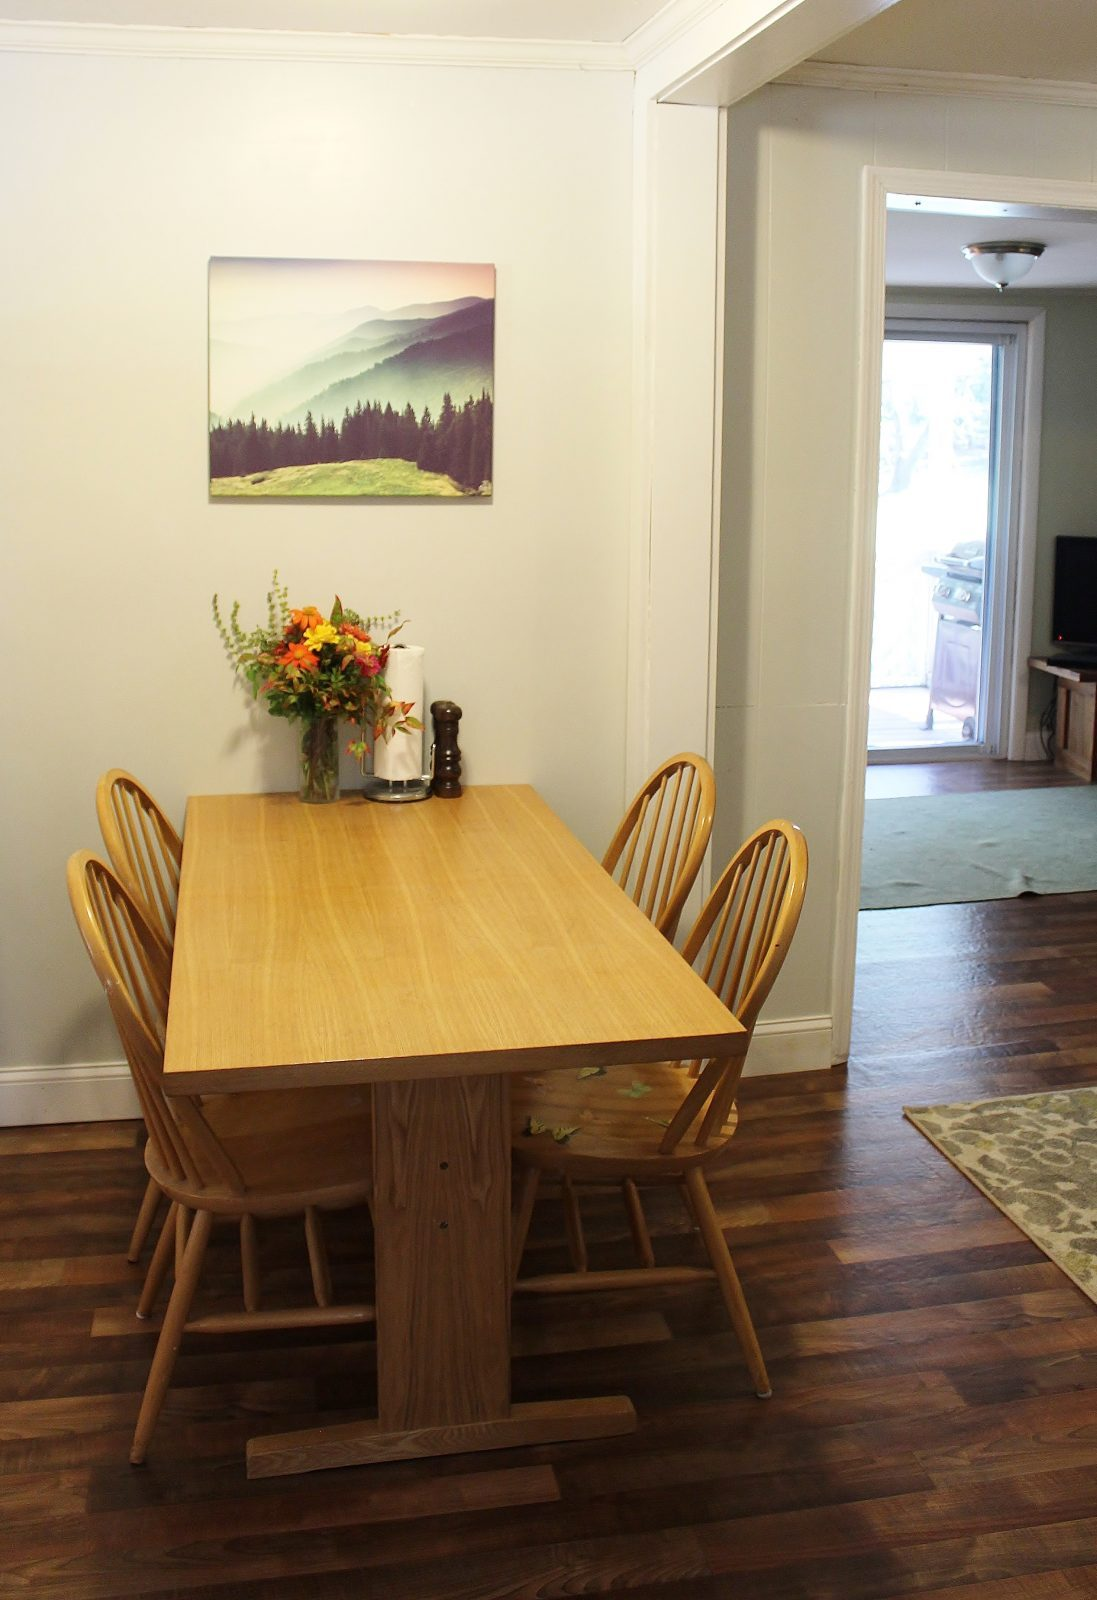 Wall Mural above dining table